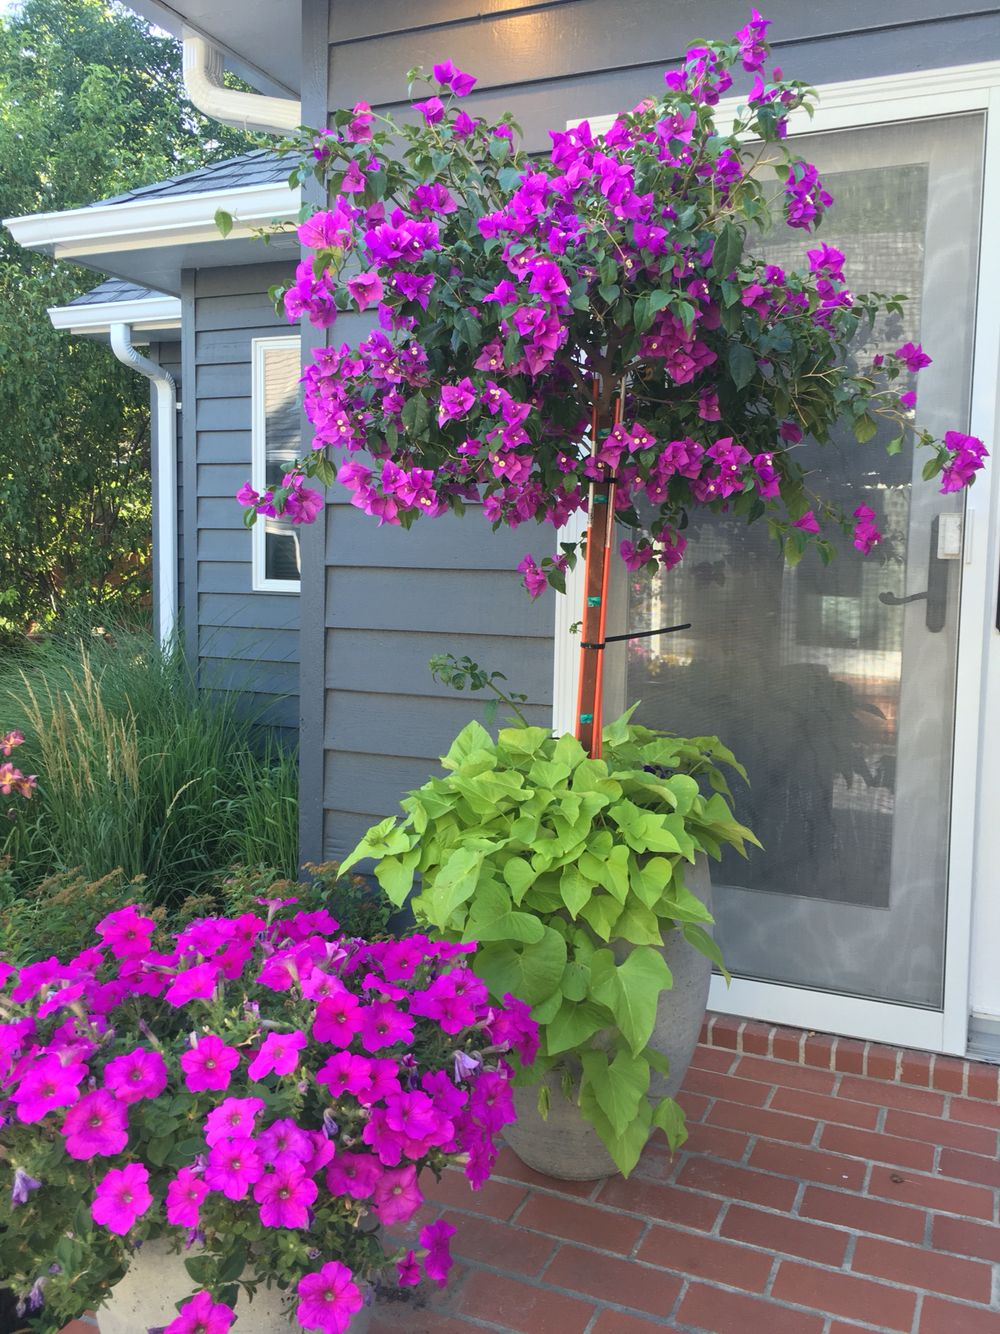 Genial Bougainvillea Tree, Patio Flowers, Potted Plants, Full Sun More